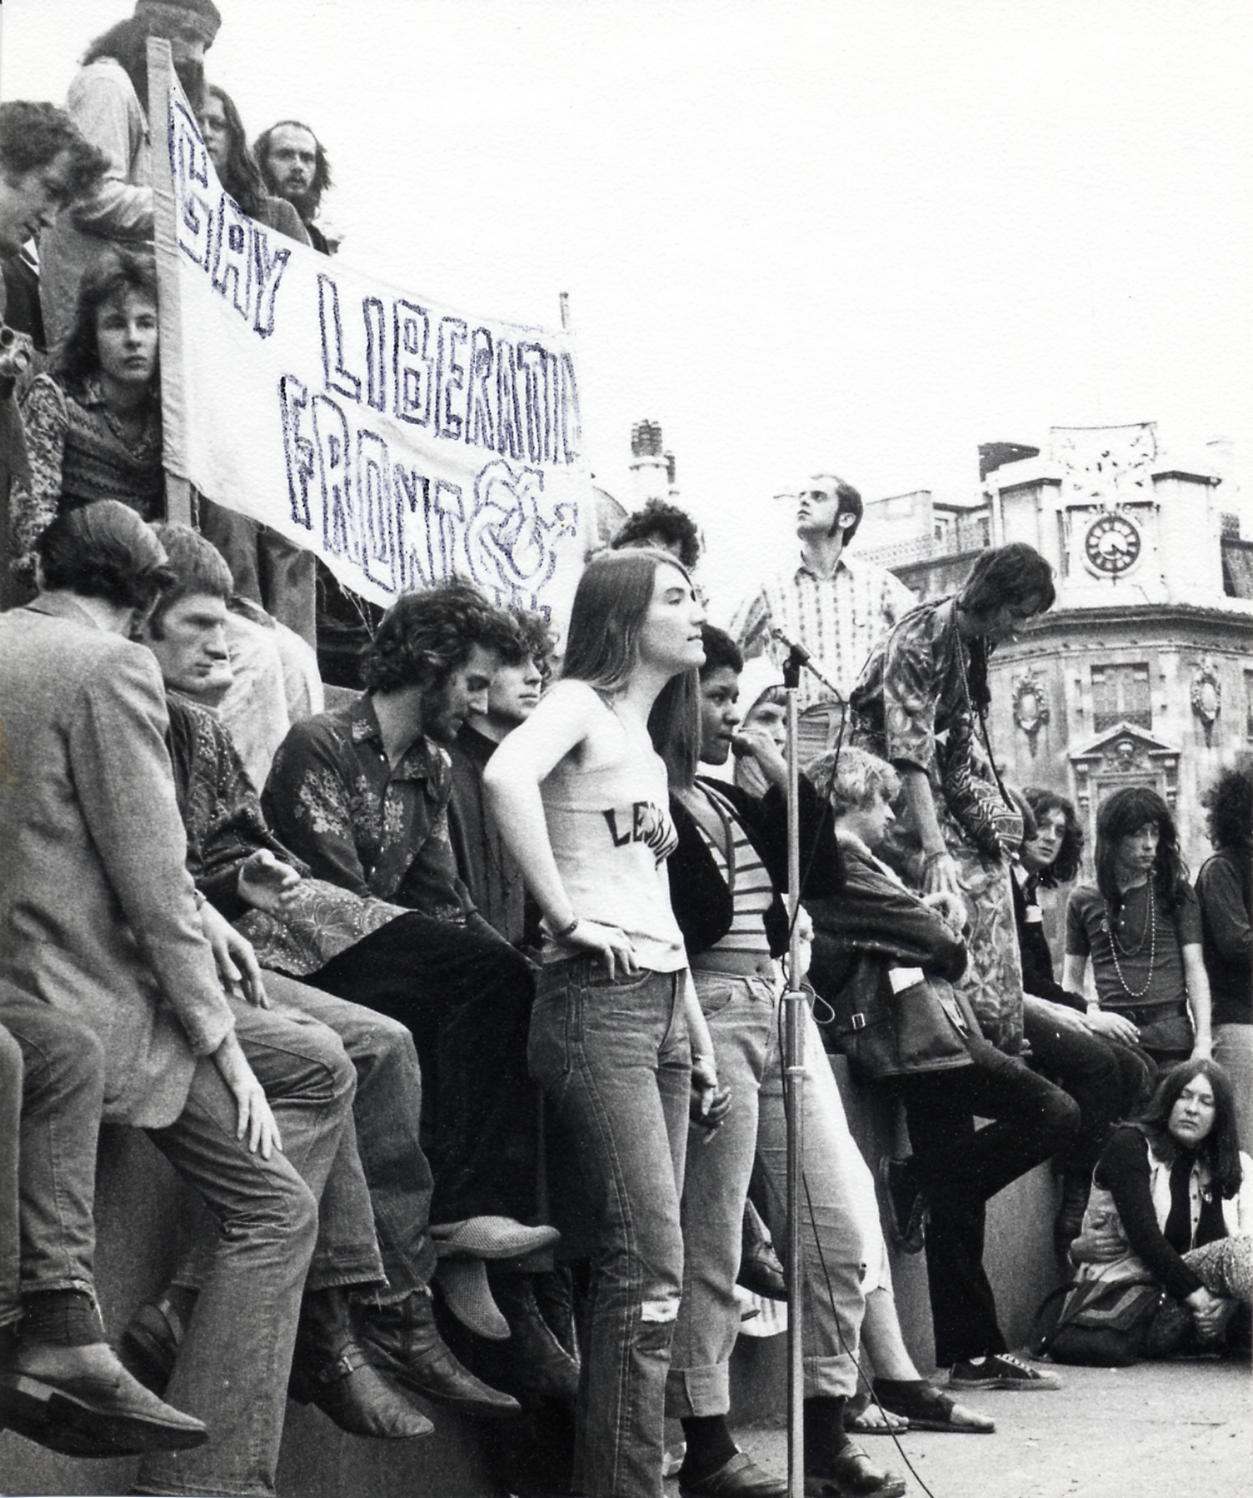 1972 in LGBT rights